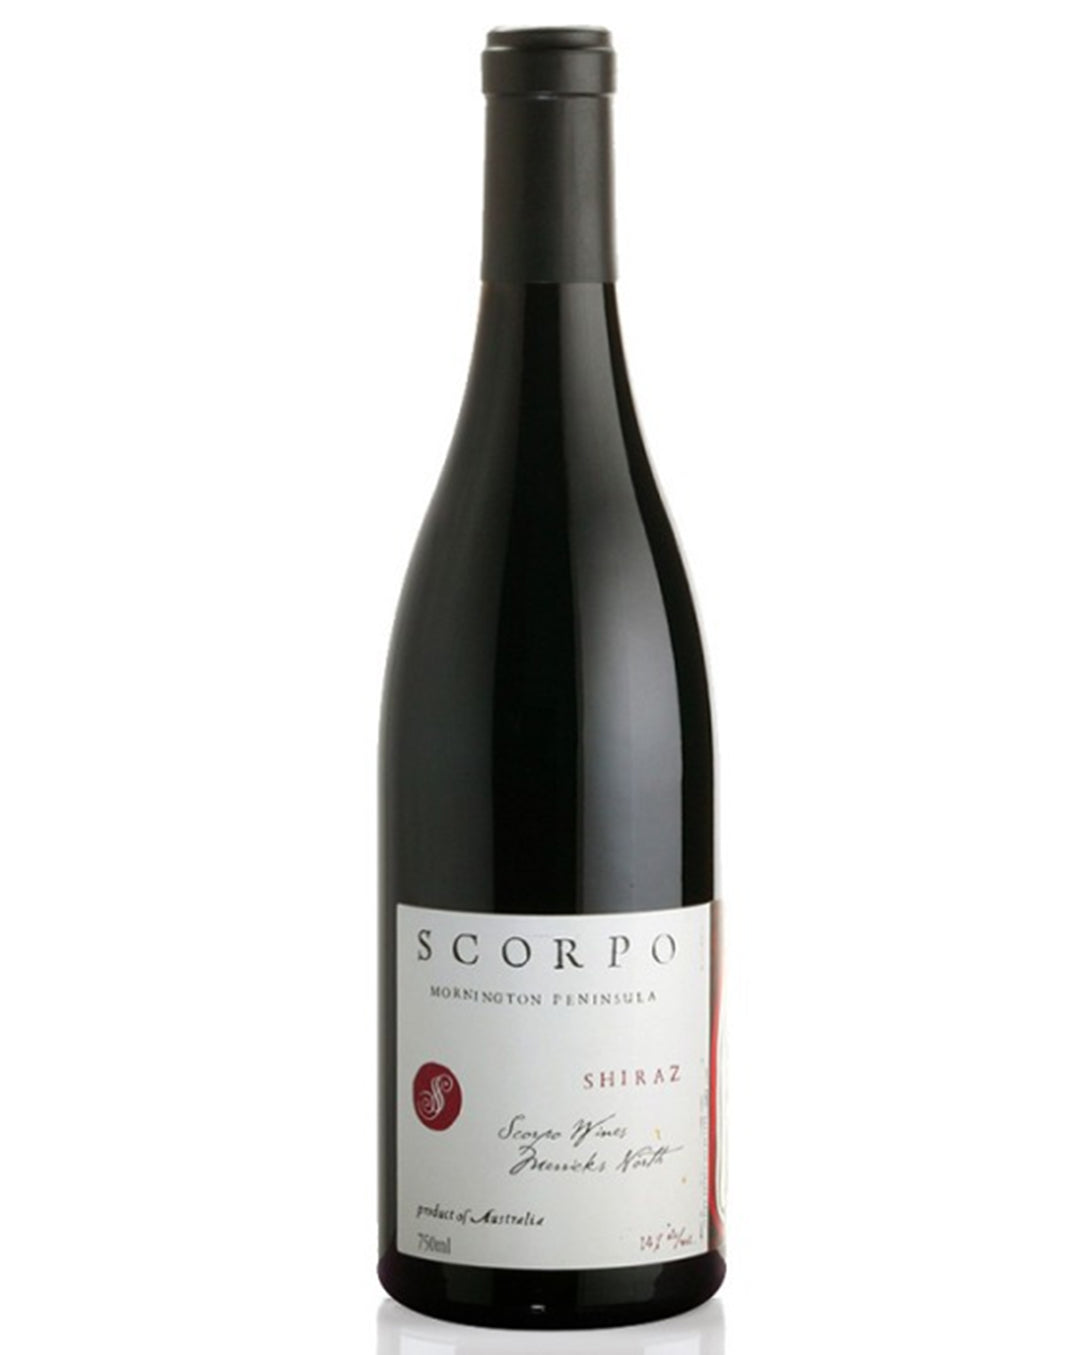 2019 Scorpo Old Vine Shiraz, Mornington Peninsula VIC